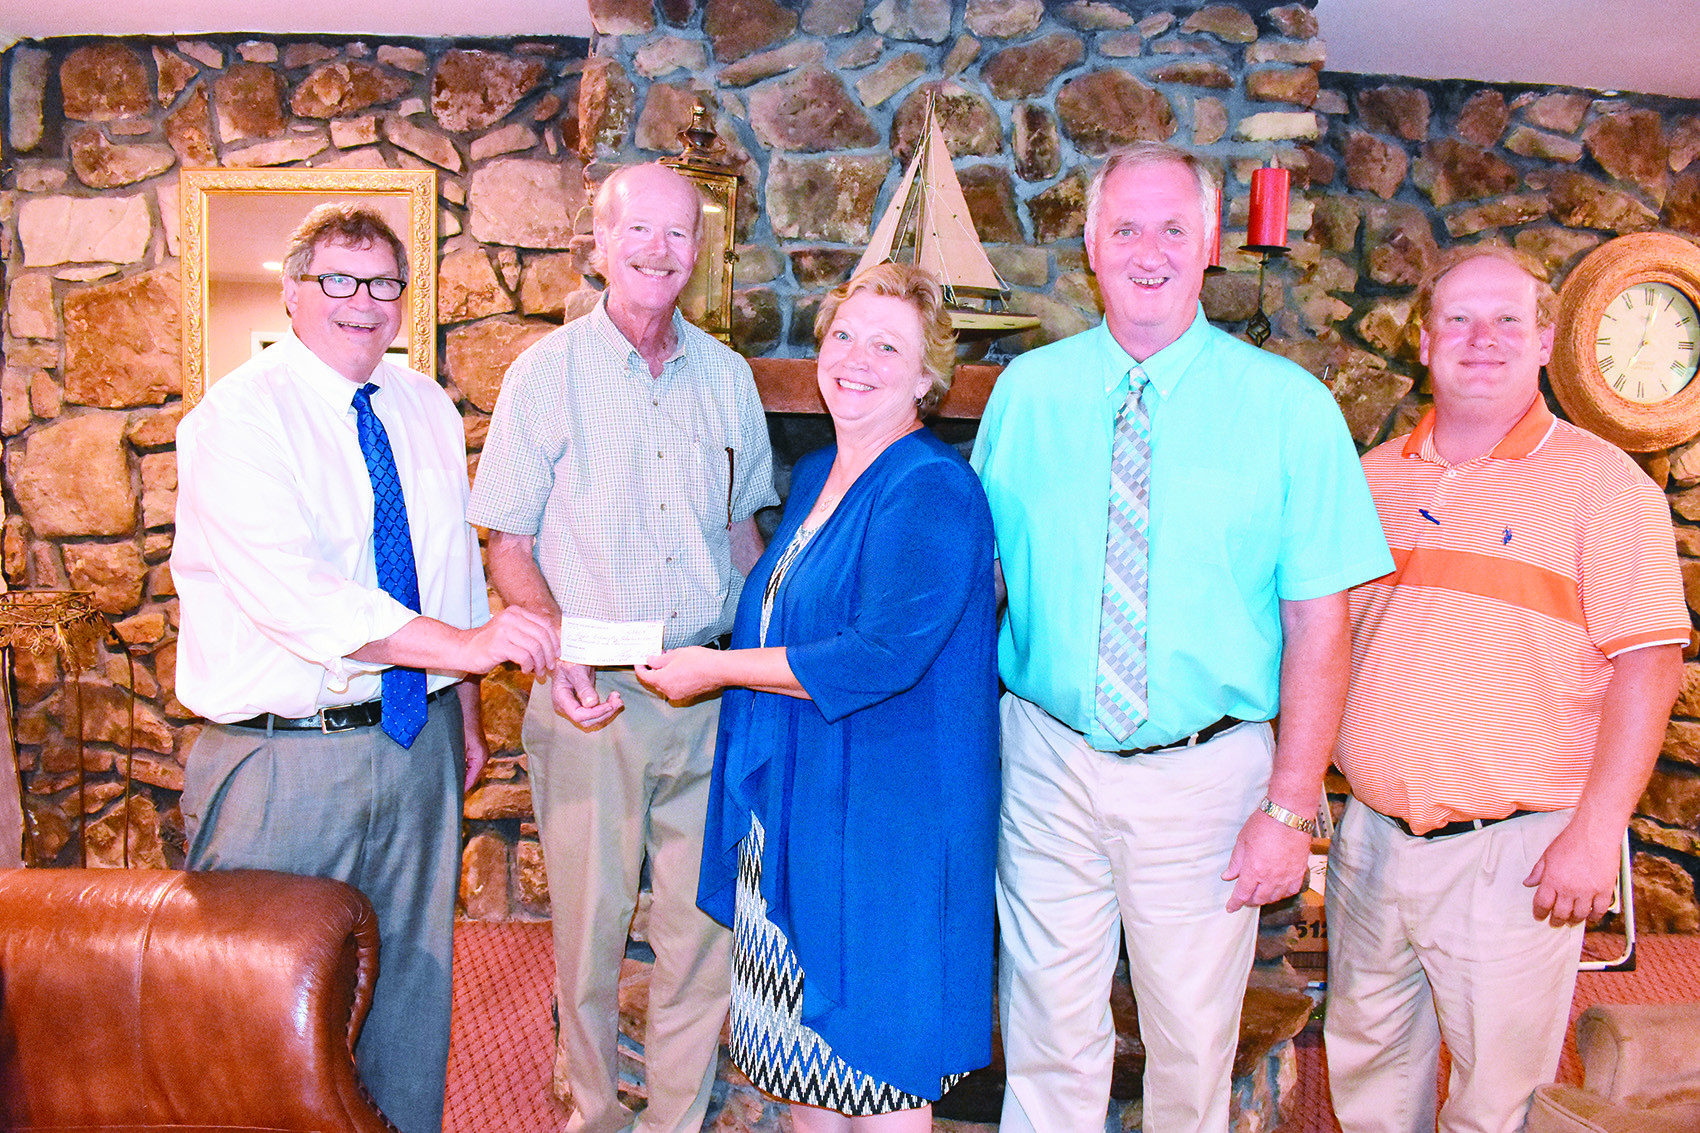 The Winston County Arts Council presented a $1,000 check to Lynn Elementary School at its June 25 meeting to use in its marking of the state's bicentennial. Shown in the presentation at Lakeshore Inn in Double Springs are, from left, state Rep. Tim Wadsworth, arts council treasurer Larry Welton, teacher Cynthia Tittle of Lynn Elementary School, Wayland Tittle of Lynn Elementary's Bicentennial Grant Committee and Winston County Commissioner David Cummings.